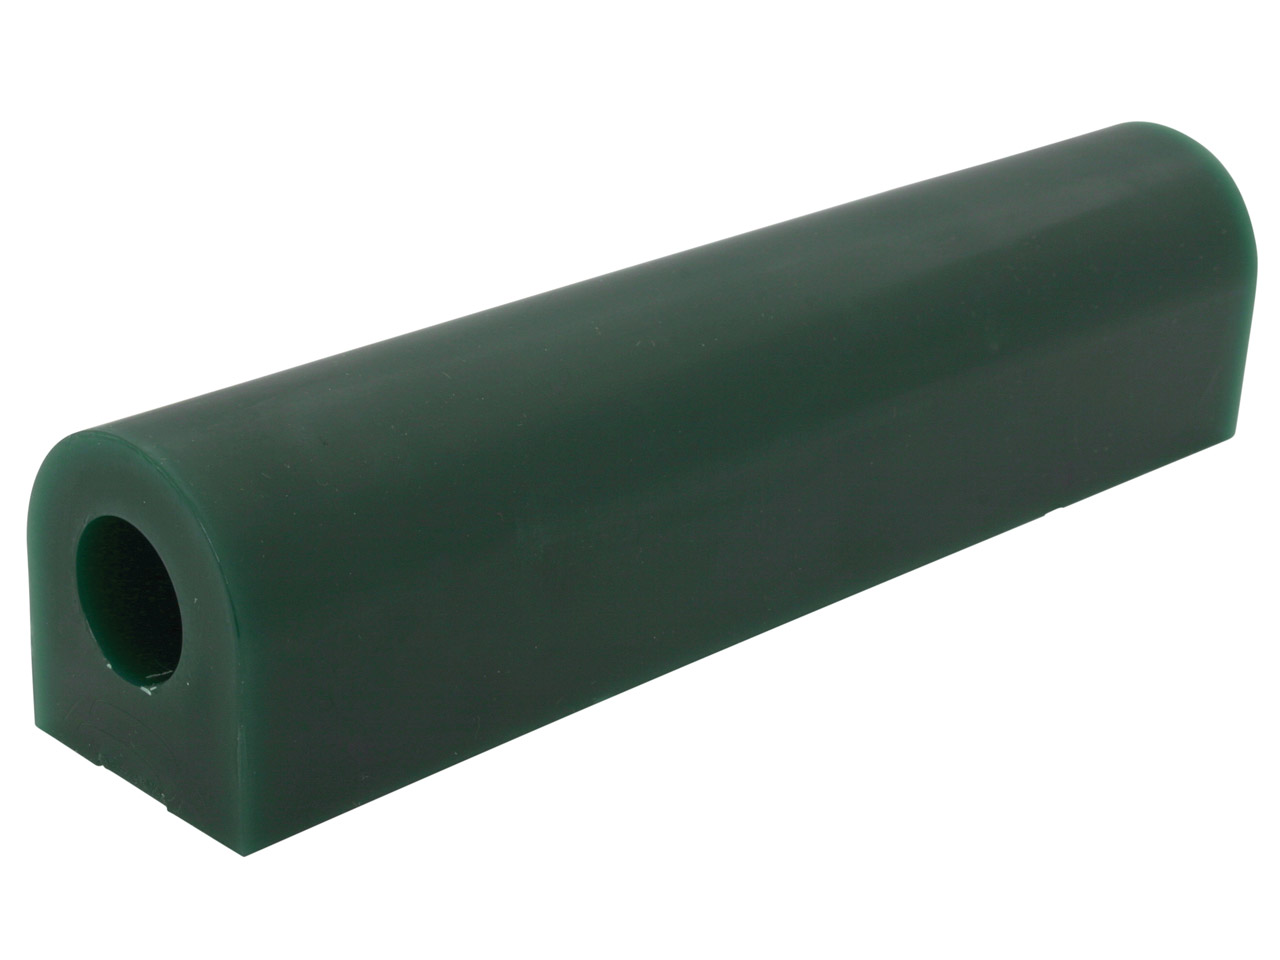 Ferris Flat Sided Wax Tube, Green, 6